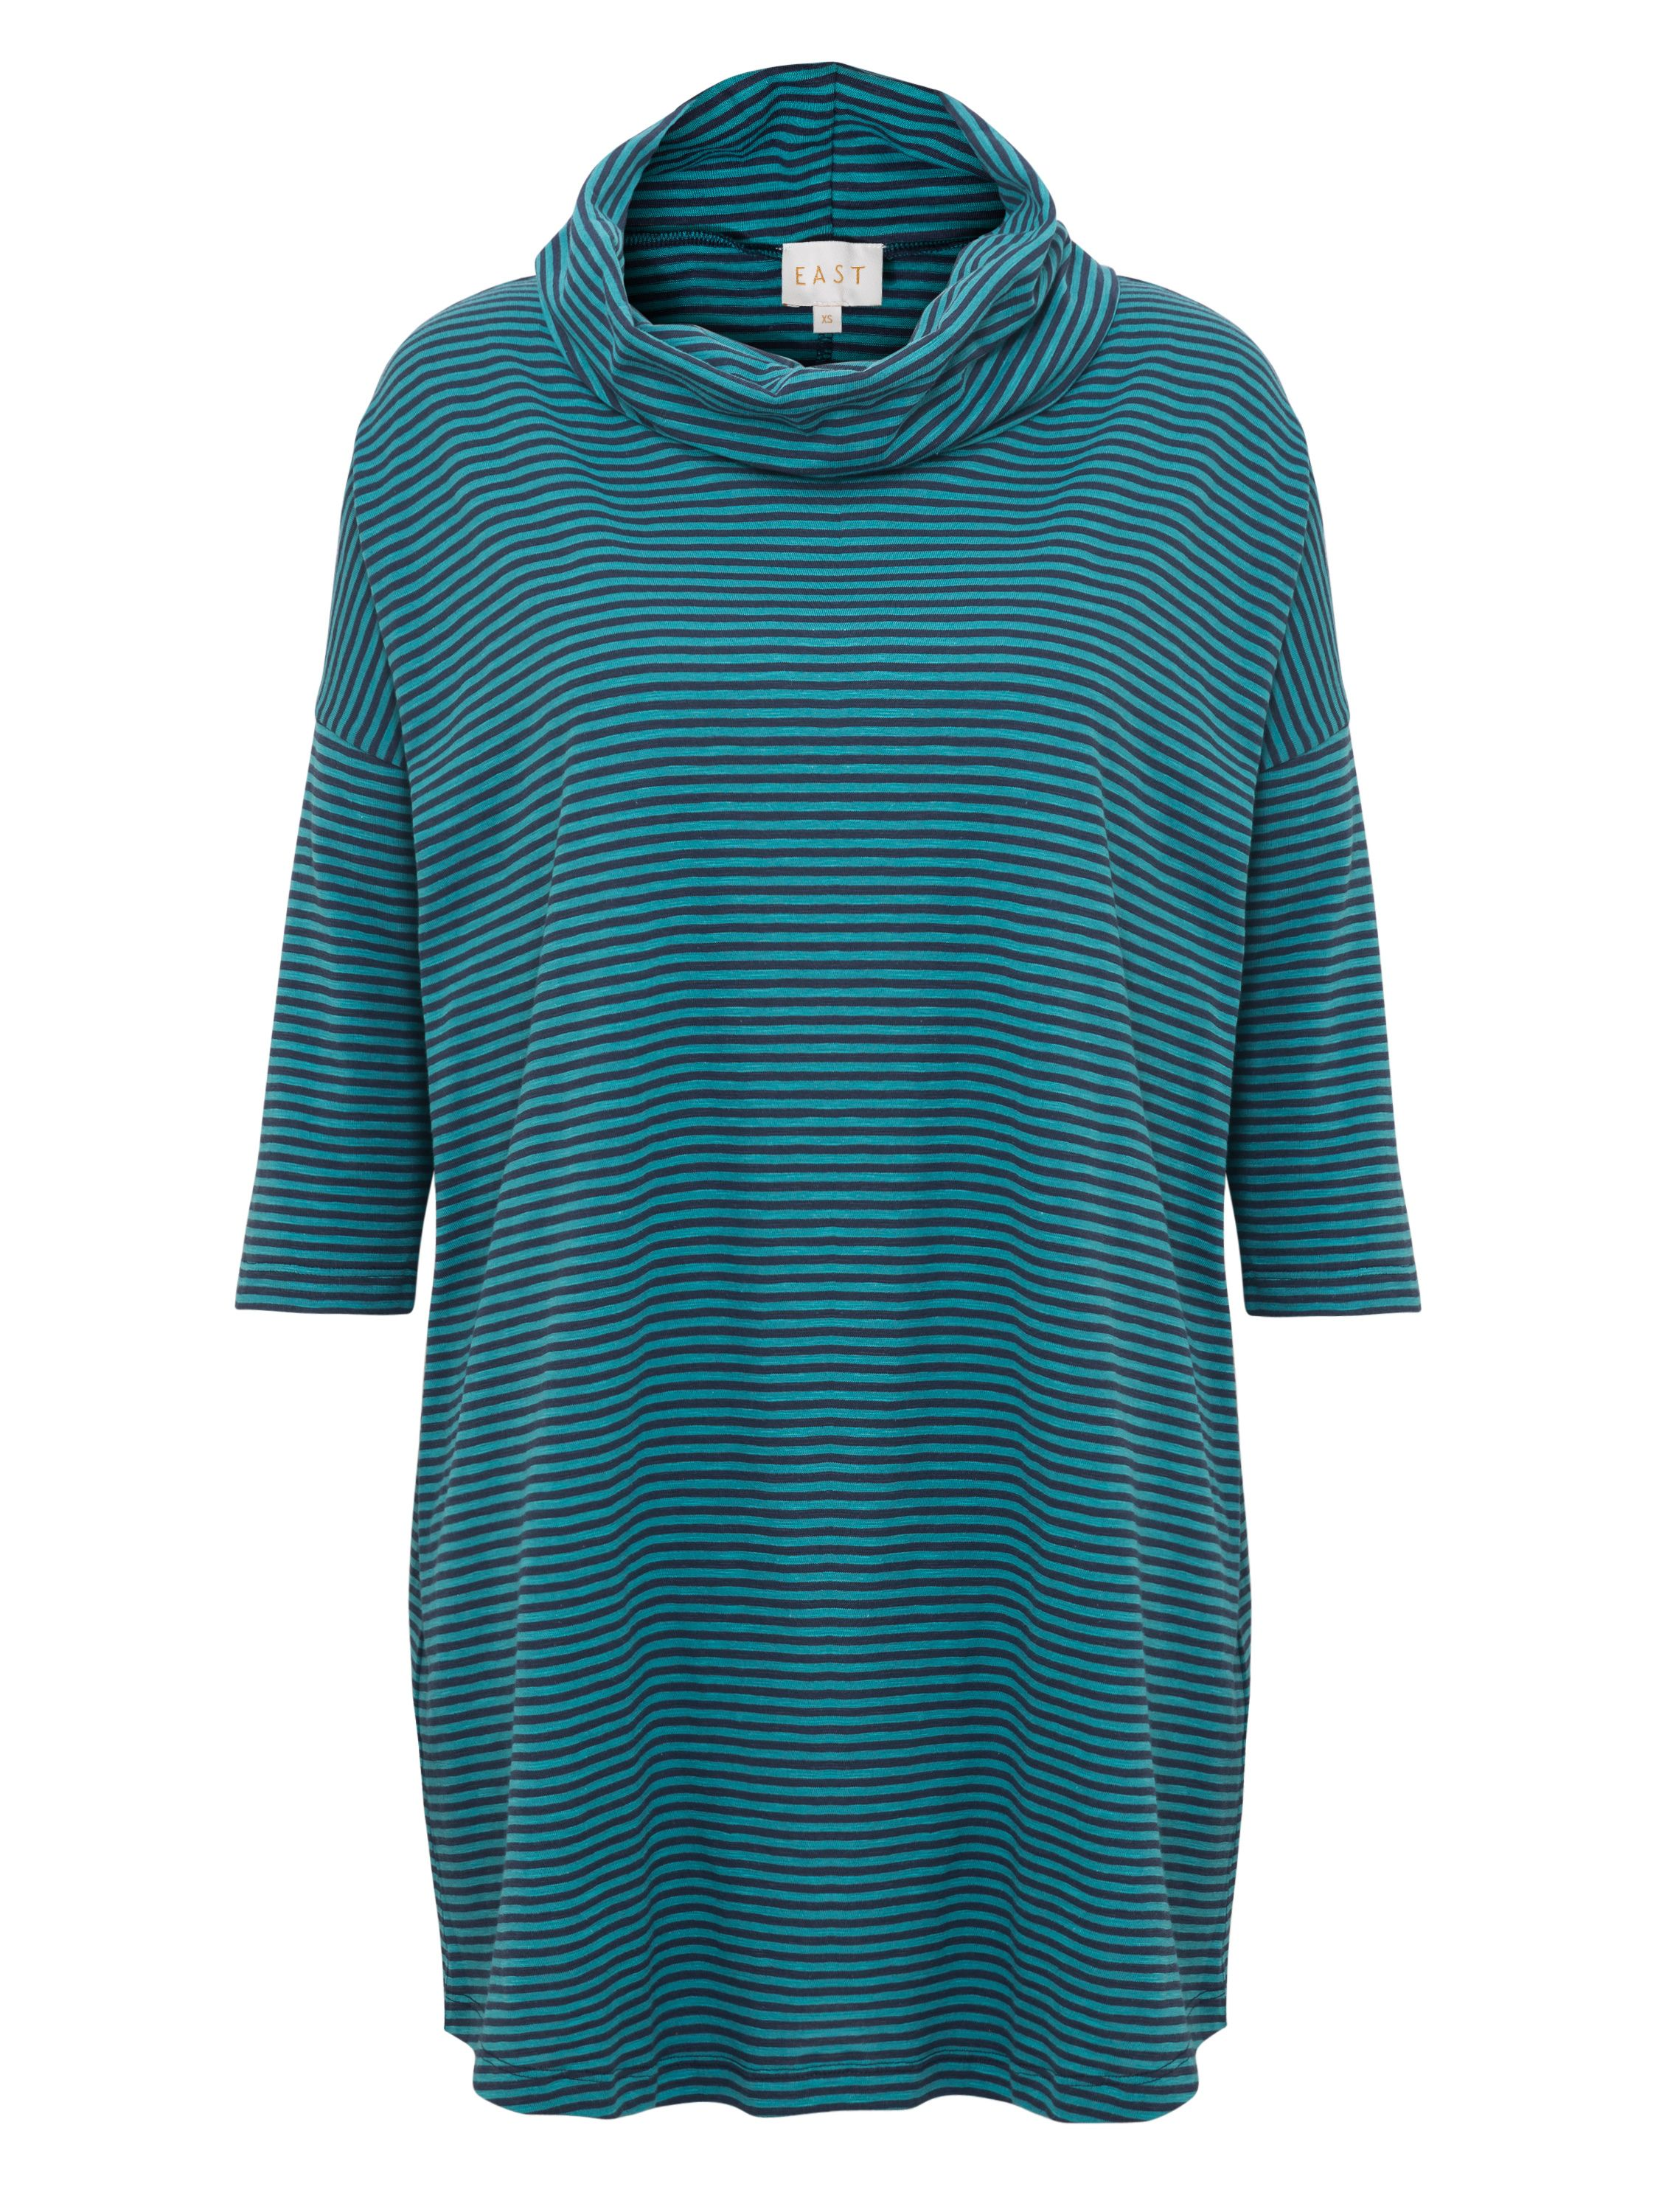 East Stripe Cowl Neck Top, Green